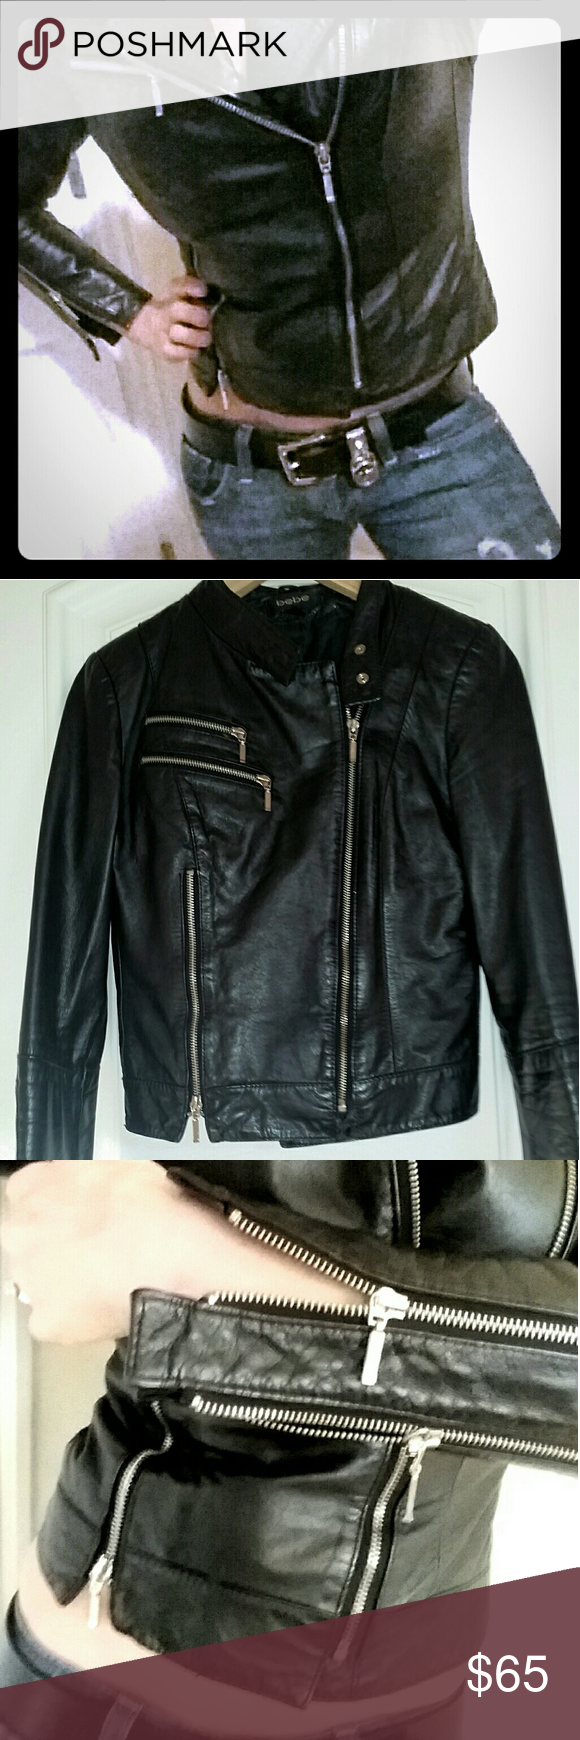 Bebe black leather moto jacket with zippers Gorgeous black leather Bebe motorcycle jacket with lots of zippers. This jacket looks really awesome on but unfortunately it's too small on me now.  Fitted, full zip up with silver zipper detail on the side and both sleeves. 2 zippered pockets on the chest.  Jacket is in overall good condition but the lining inside the sleeves is torn. You can't see it but can only tell when you put it on. However it doesn't take away from the style or comfort…